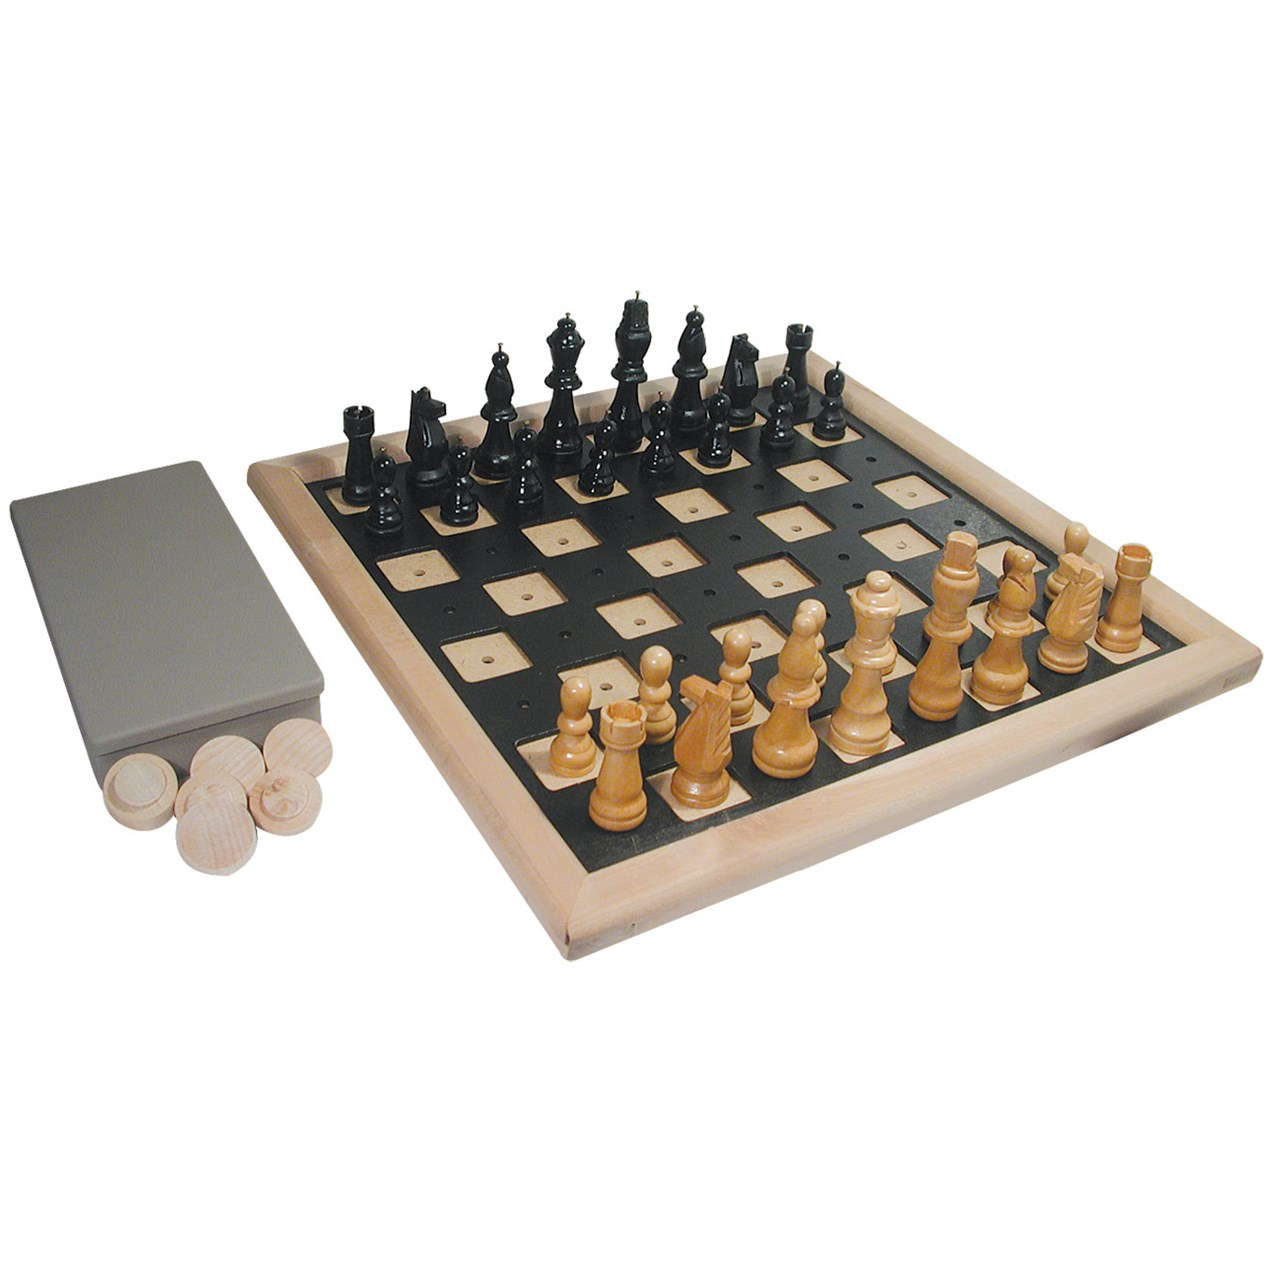 chess scrabble gg word factory checkers Aliexpress carries many board games scrabble related products, including scrabble game boards , backgammon game boards , hotels board game , board game checkers , checkers board game , checkers game board , chess board tournament , tournament chess board , chess tournament board.